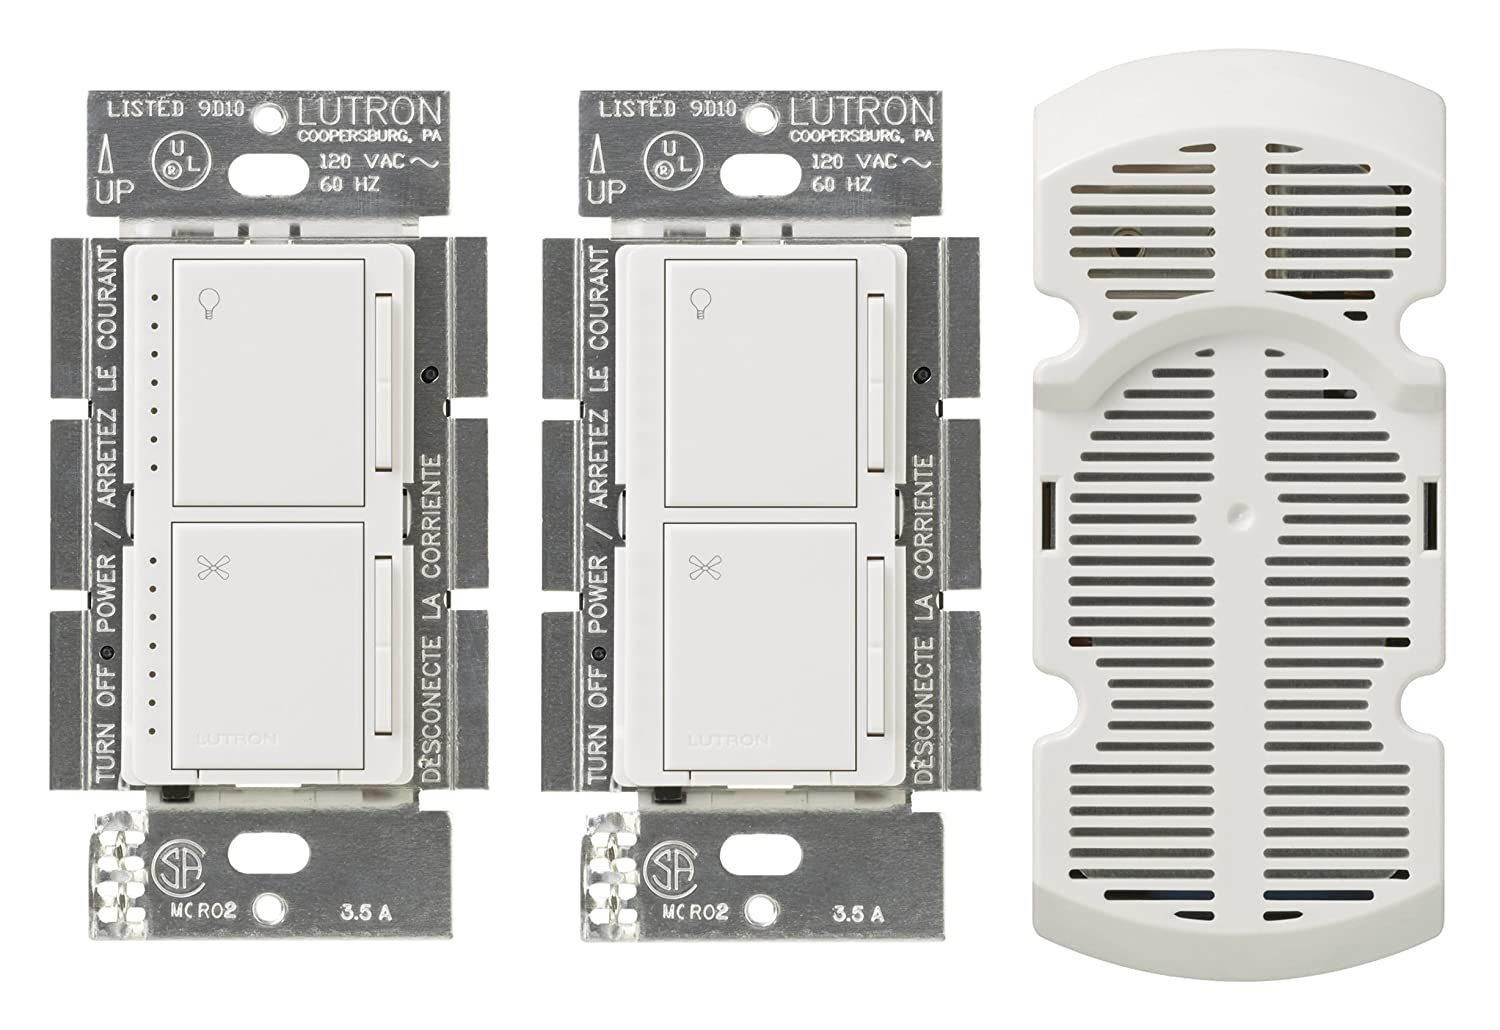 Lutron Ma Lfq3 Wh Maestro Multi Location Fan Control Kit White How To Install Ceiling And Light Switch On 3way Kits